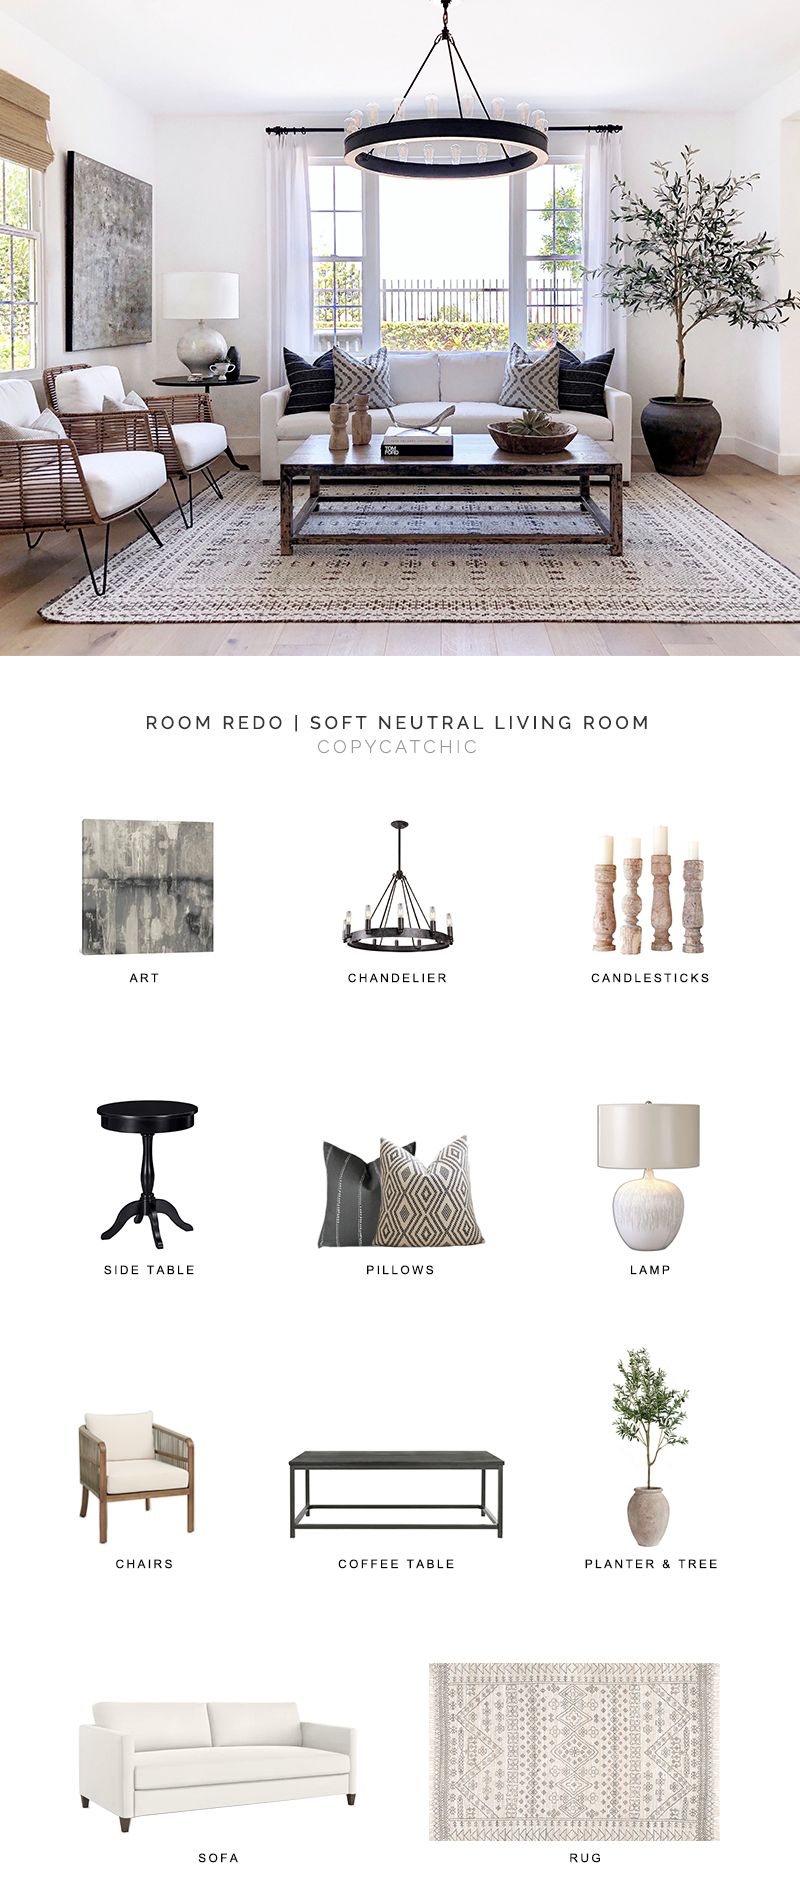 modern neutral living room look for less, copycatchic luxe living for less, budget home decor and design, daily finds, home trends, sales, budget travel and room redos